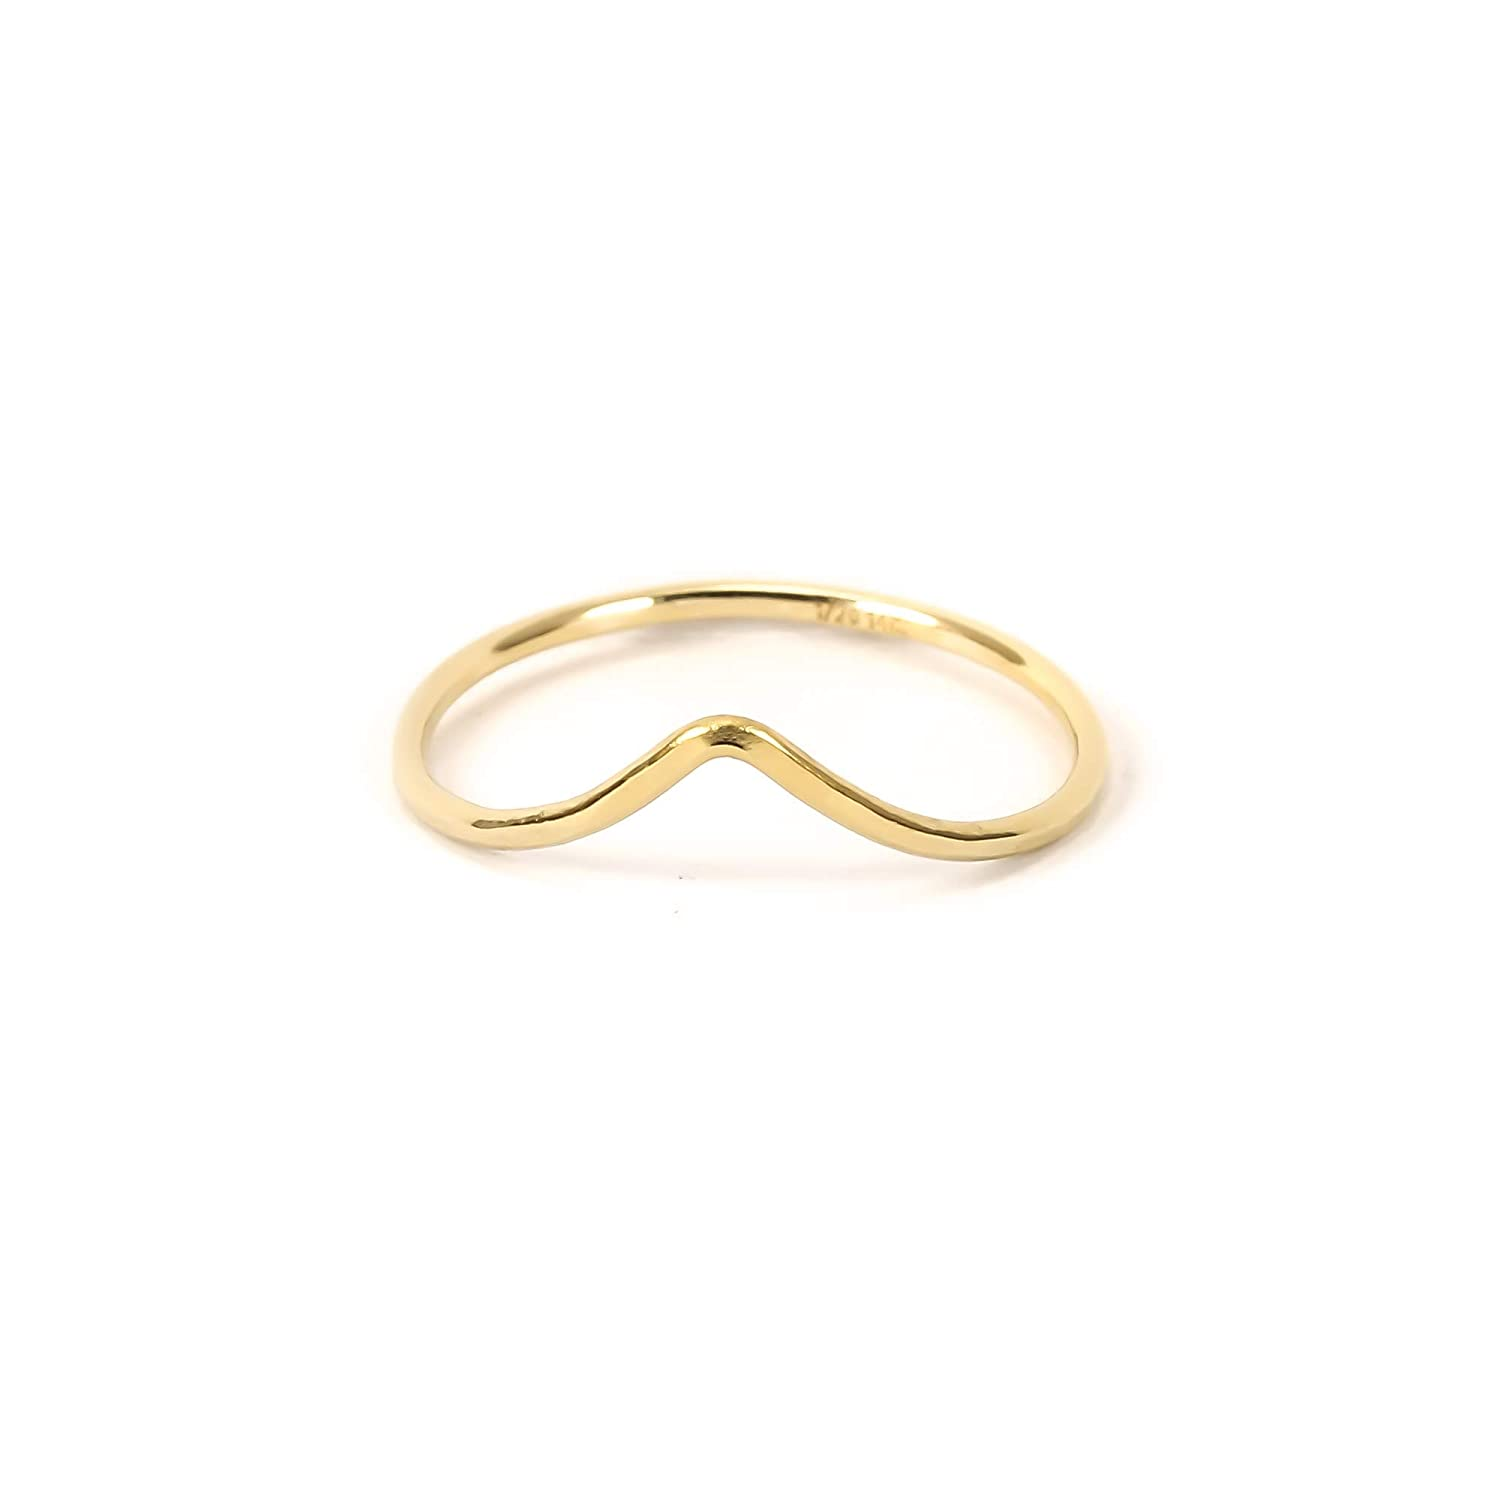 Hammered Chevron Ring in size 6 Handmade Pointed Thin Gold Band for Women Gold Filled Skinny Stacking Ring